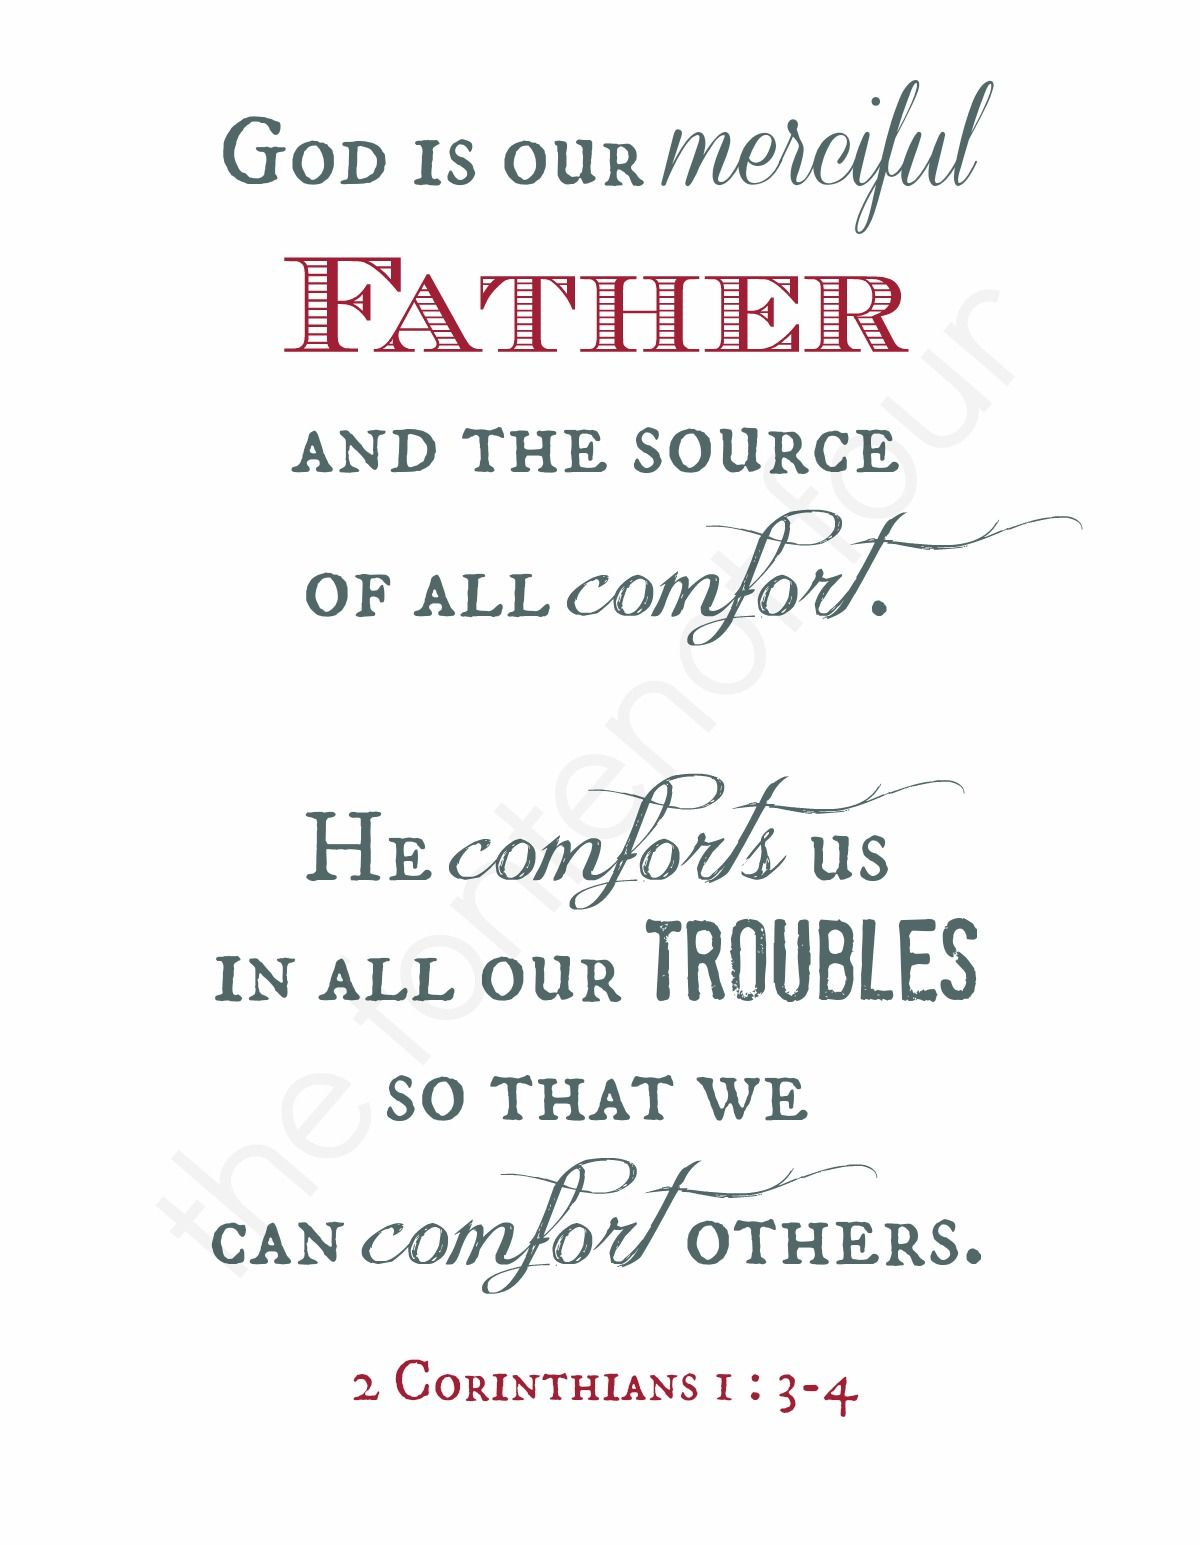 God Is Our Merciful Father And The Source Of All Comfort He